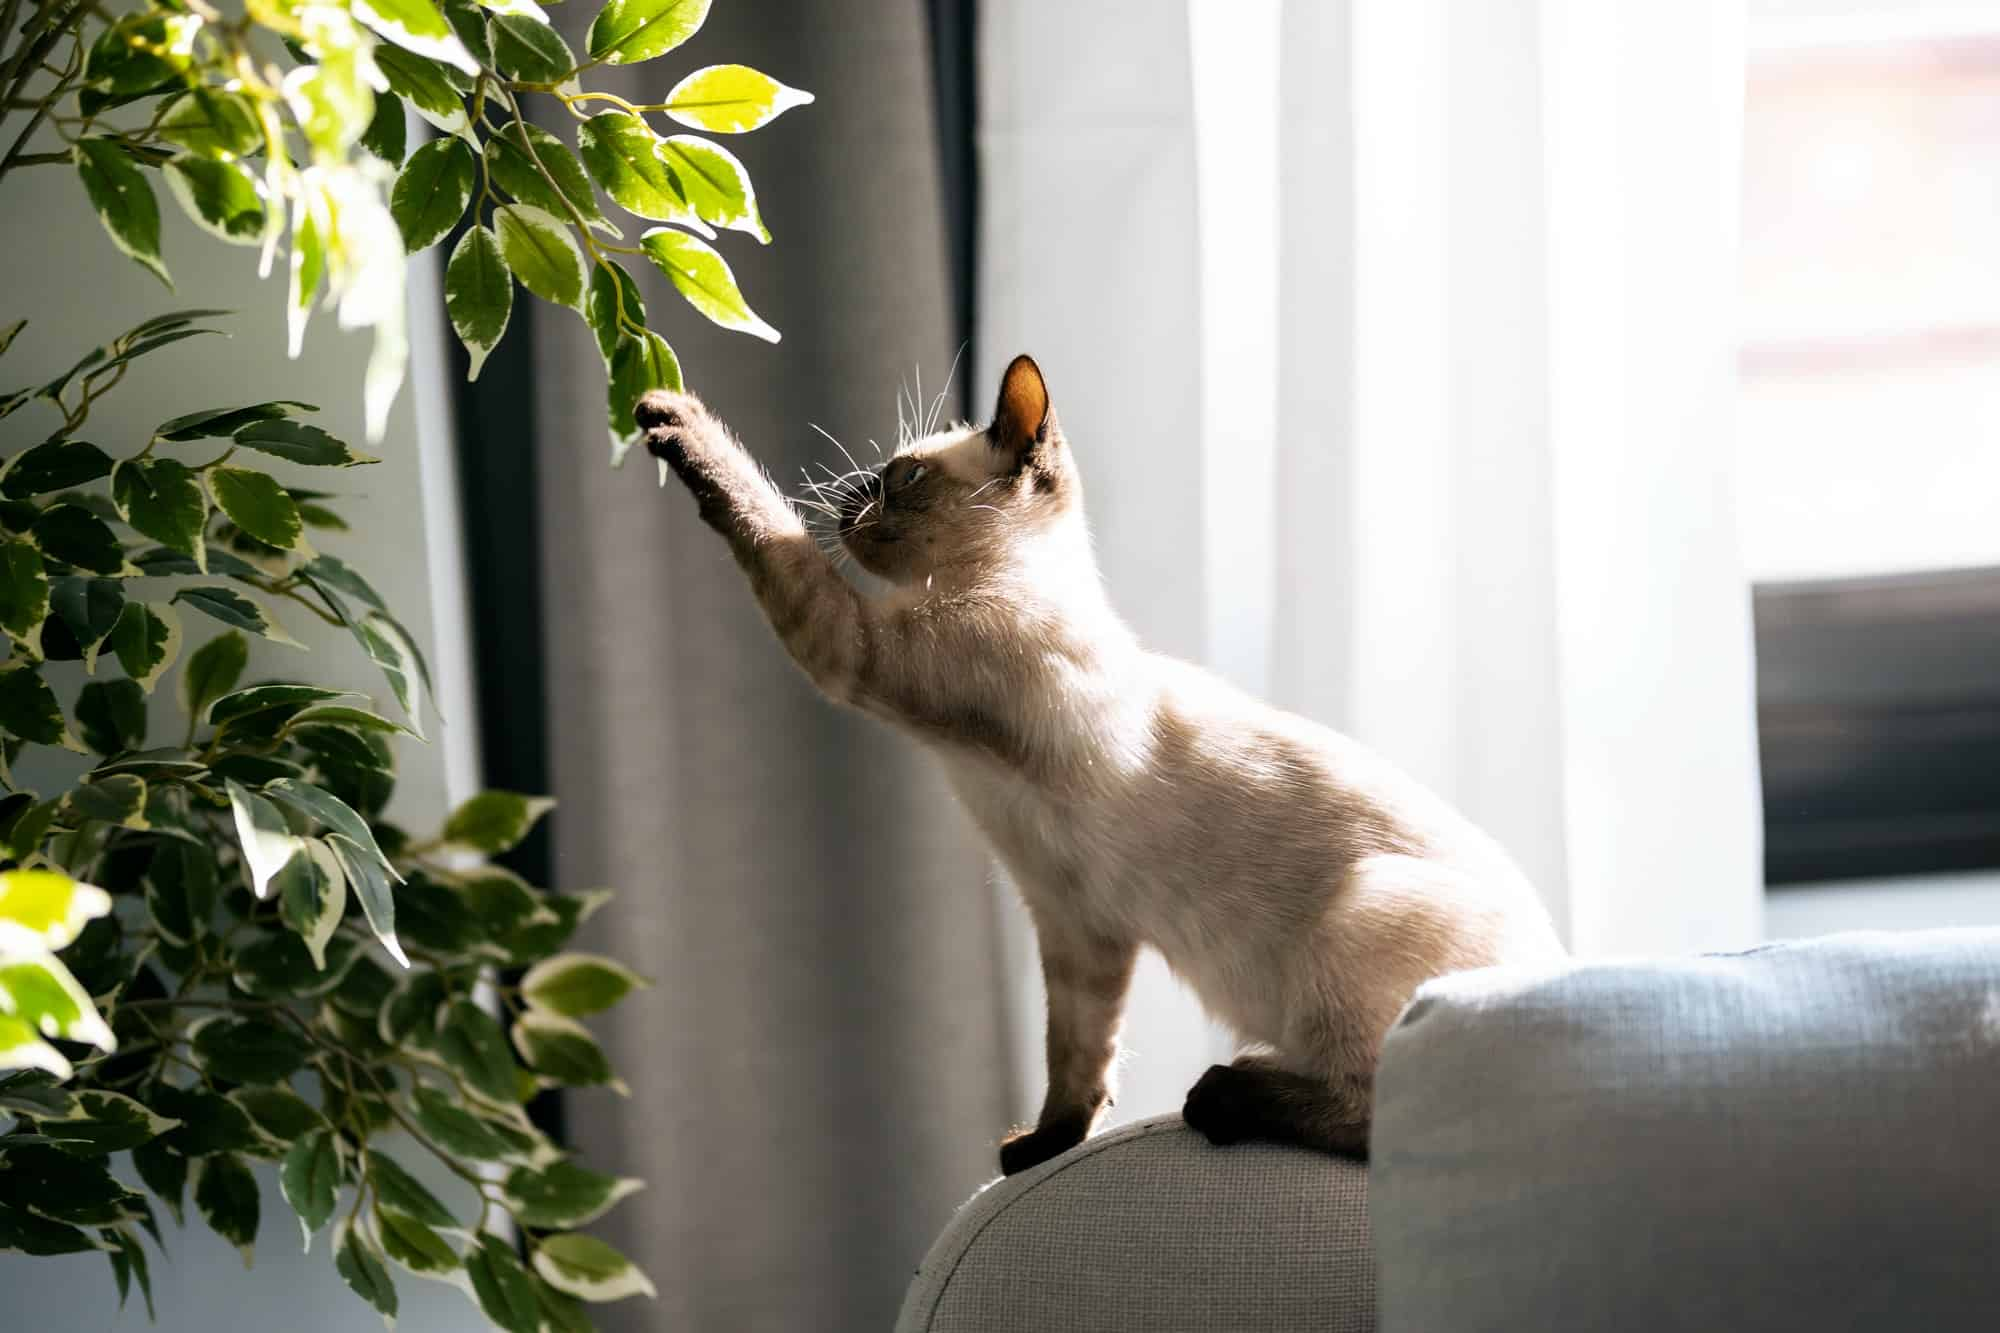 Little siamese kitten sitting on couch under green plant and playing with paw at home.